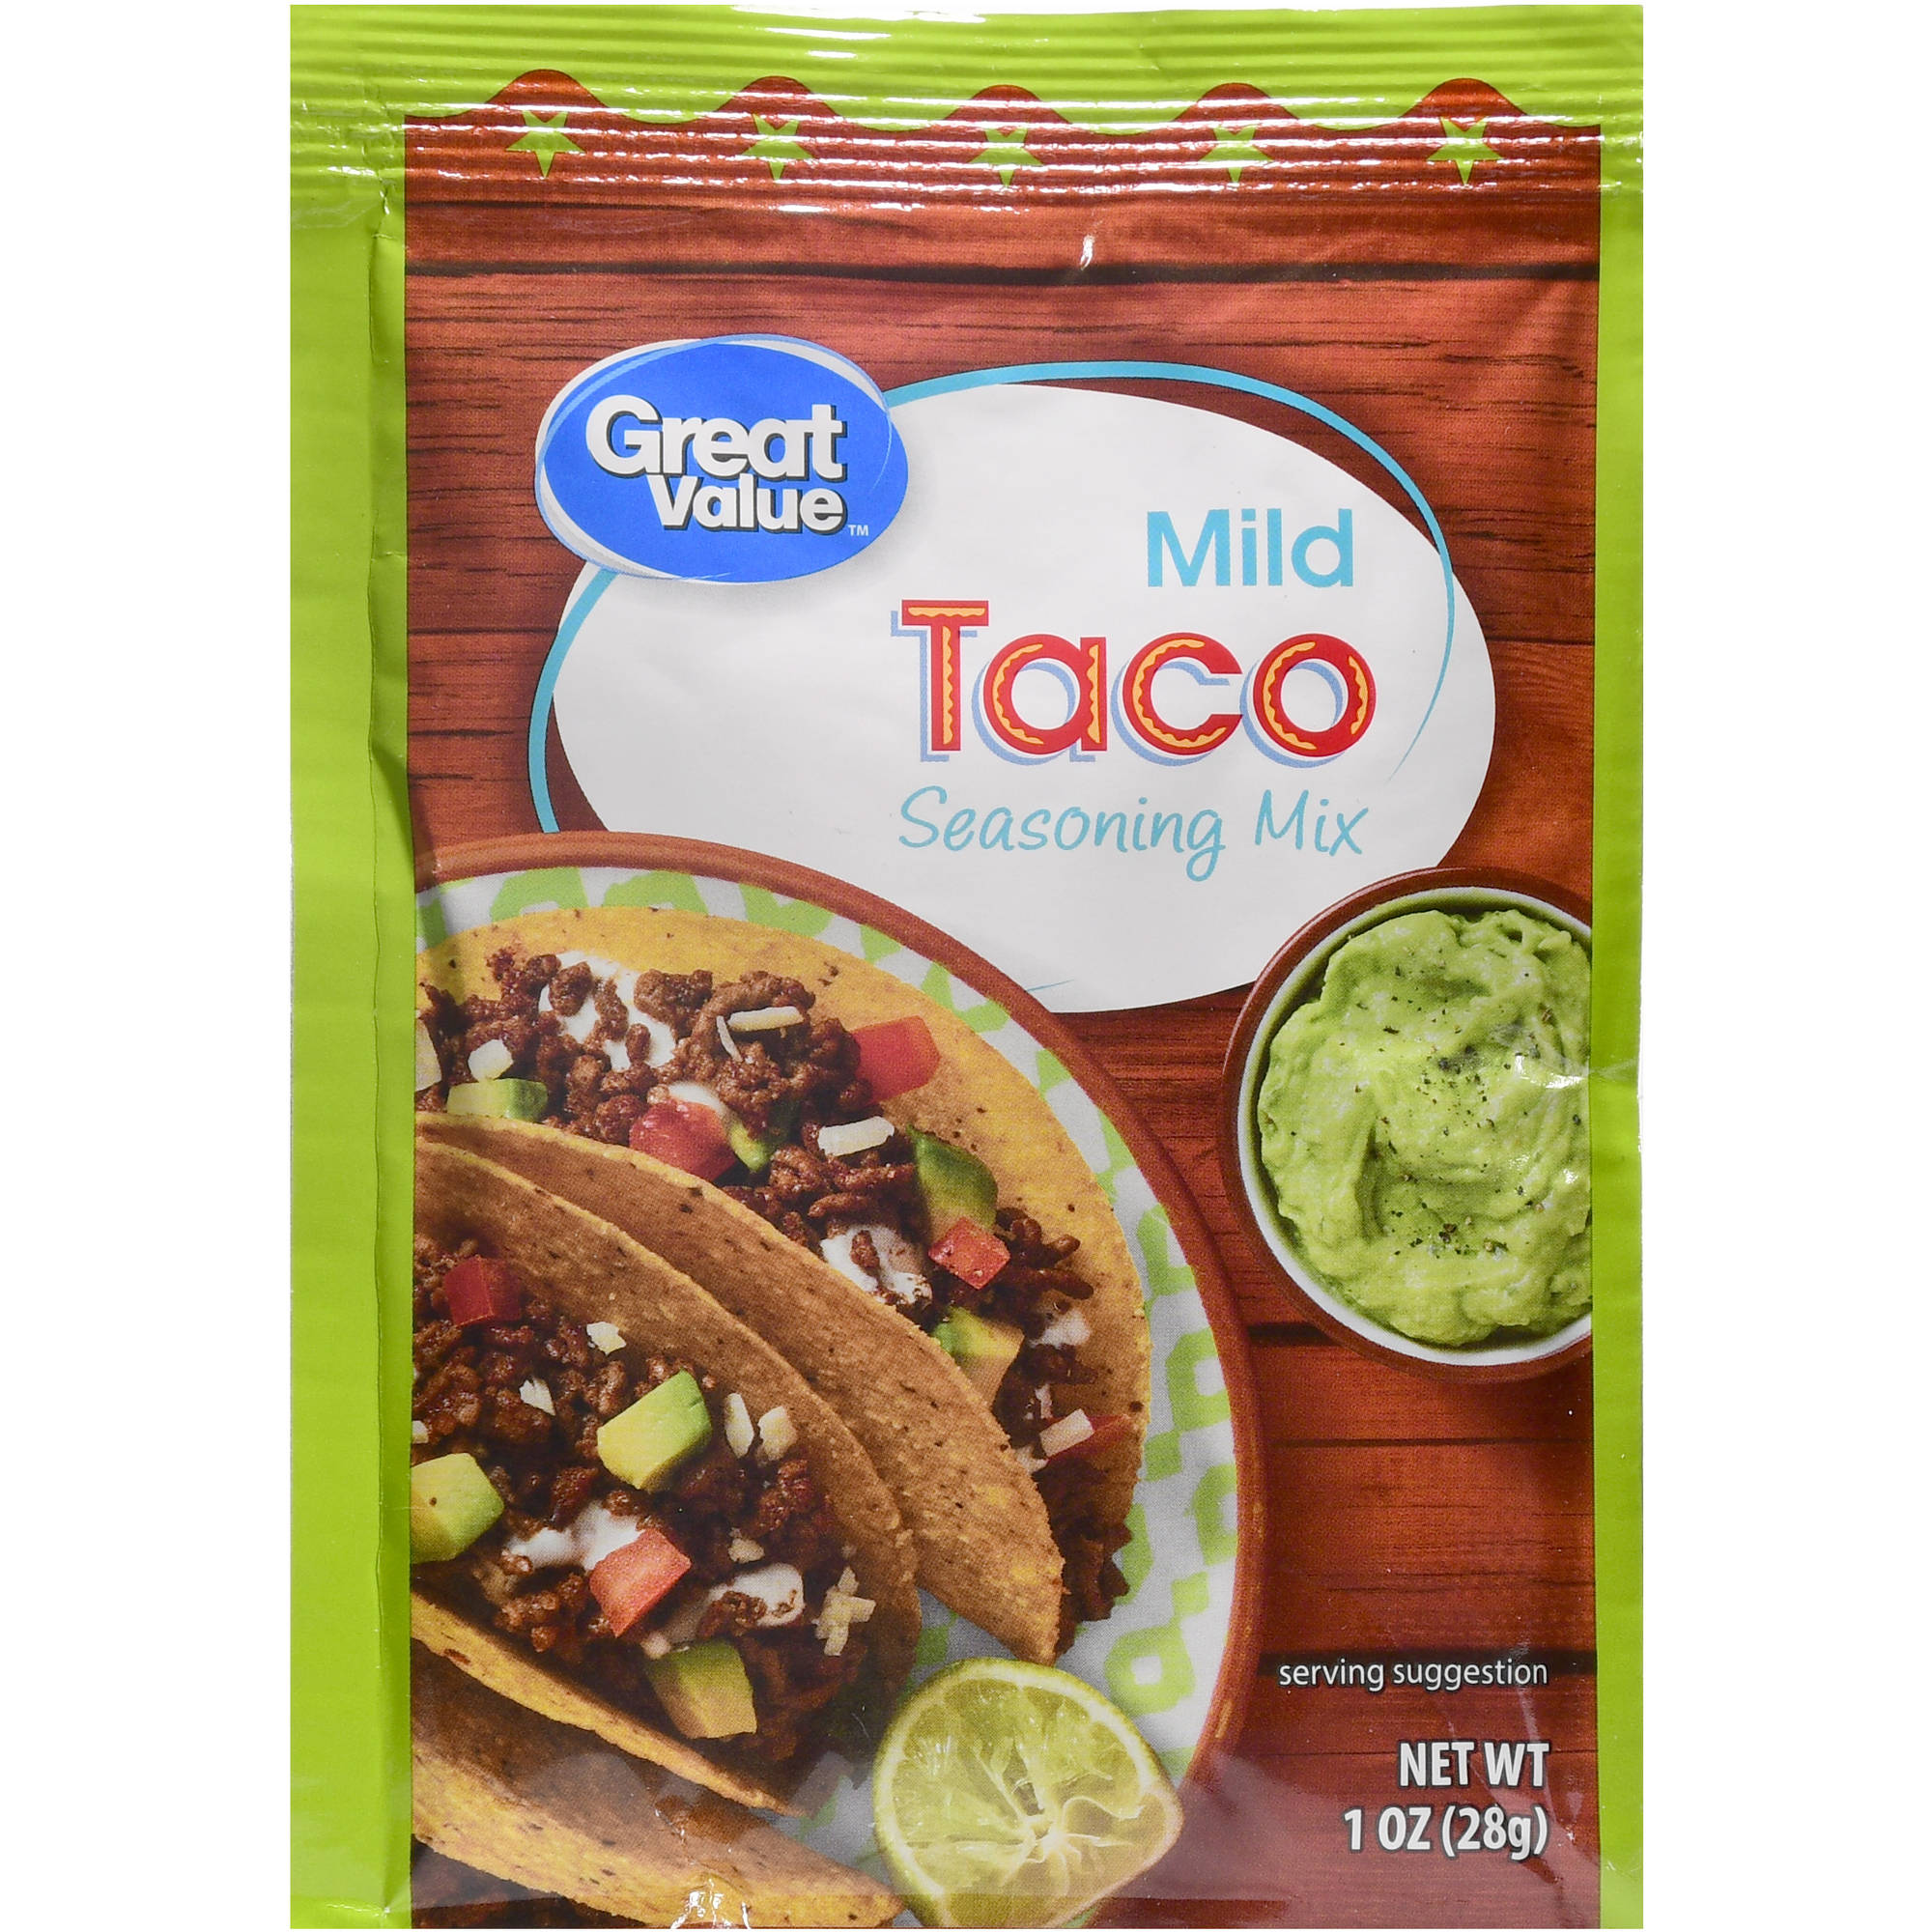 Great Value Taco Seasoning Mix, Mild, 1 oz